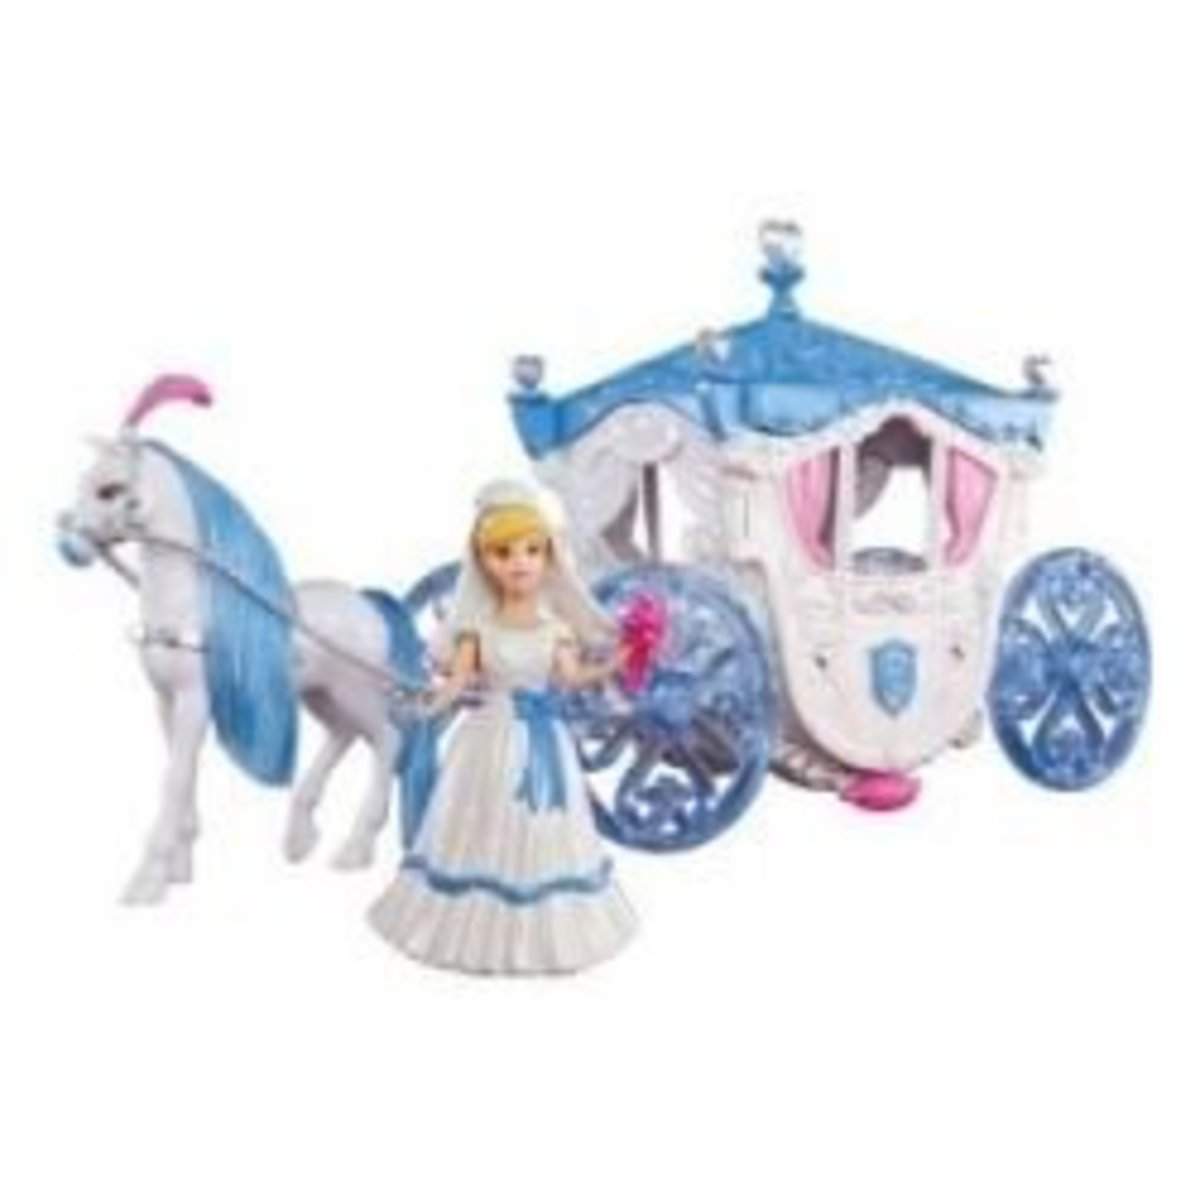 Princess, Carriage, Horse and a Story